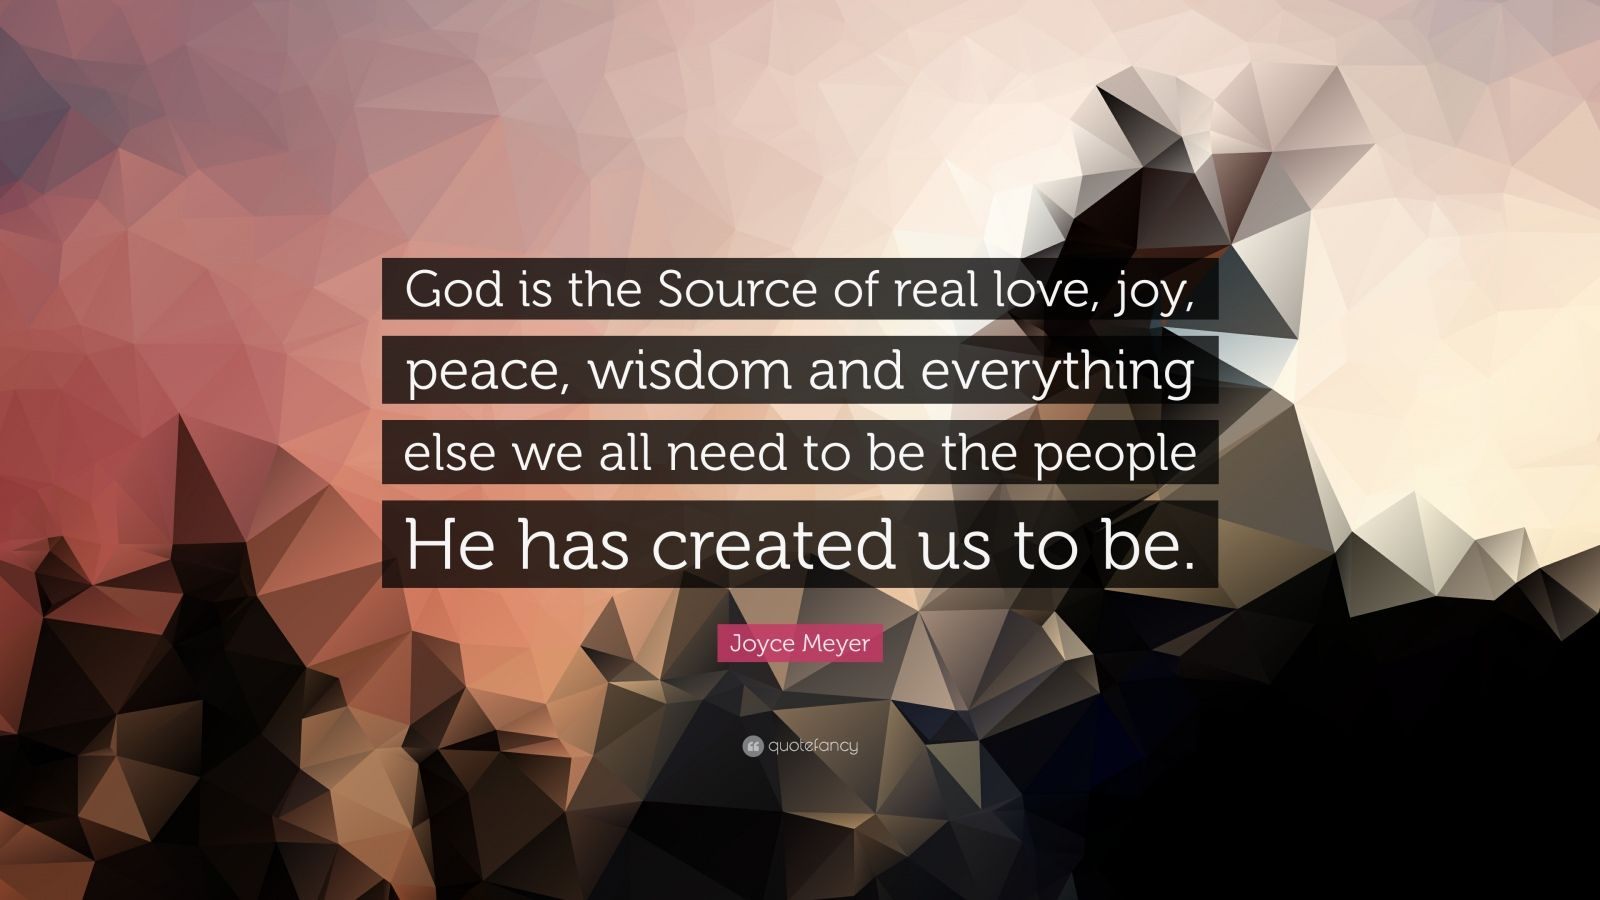 """Joyce Meyer Quote: """"God is the Source of real love, joy, peace, wisdom and everything else we all need to be the people He has created us to be."""""""